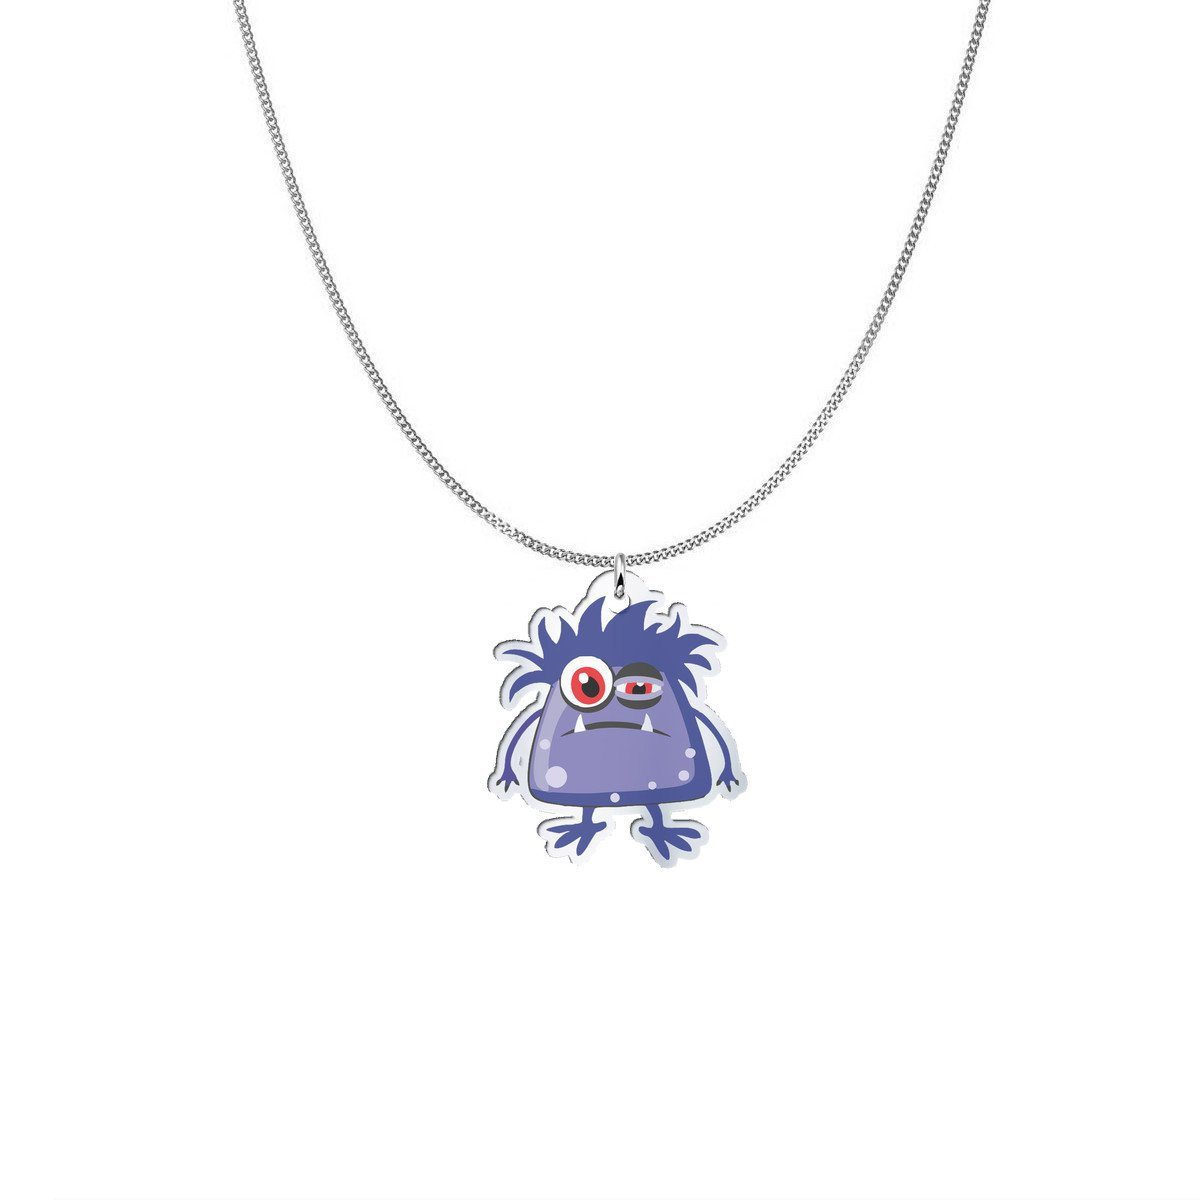 Pendant - Mya The Myalgic Encephalomyelitis Monster Silver Necklace